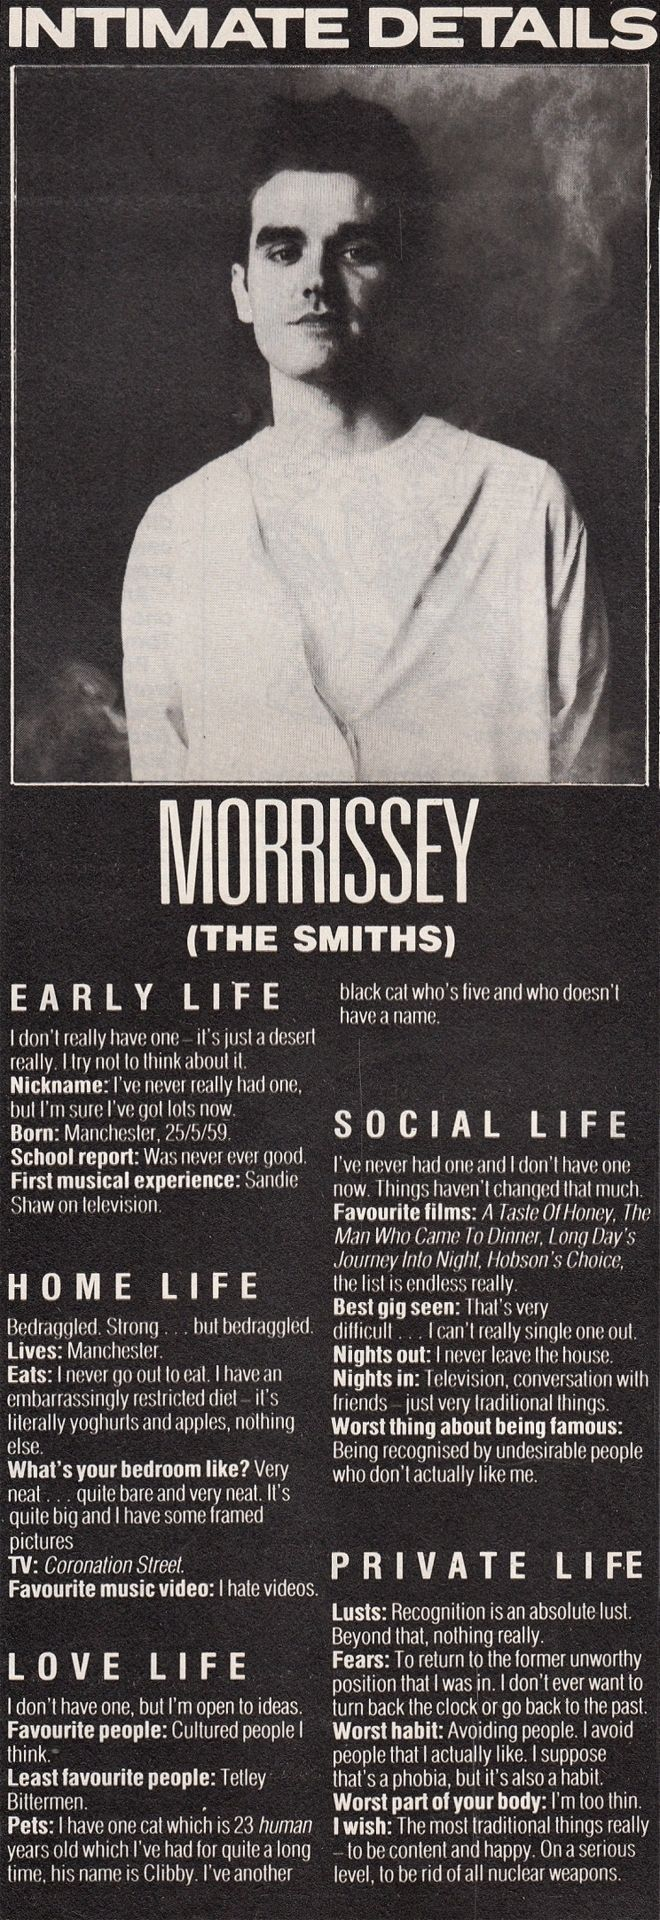 #morrissey this is so fantastic